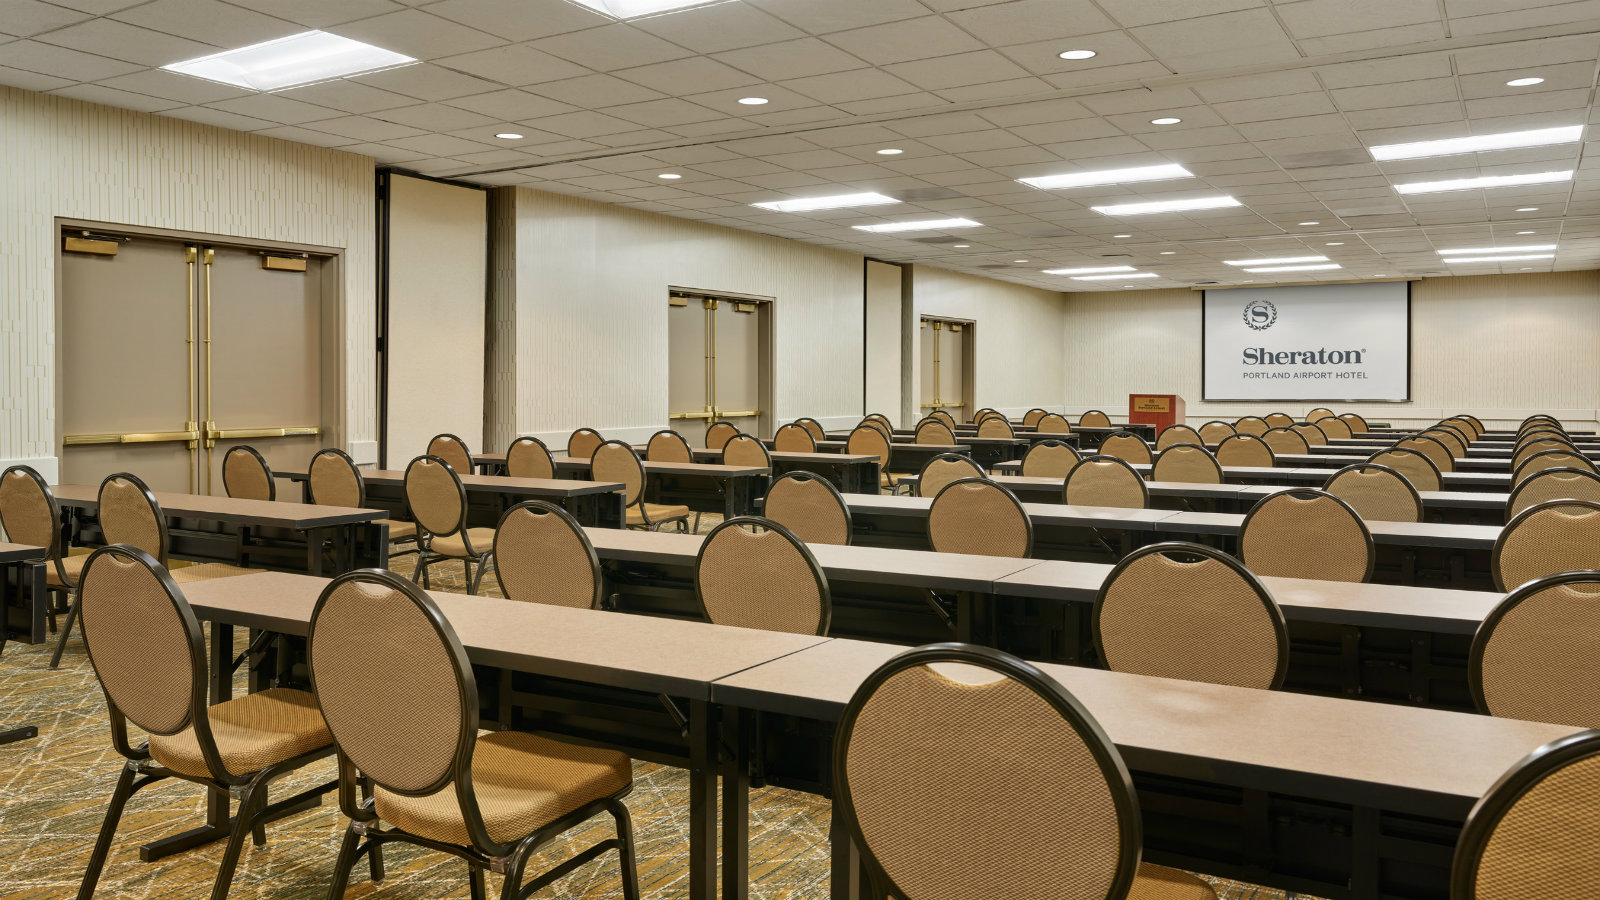 Classroom Set Up | Sheraton Portland Airport Hotel